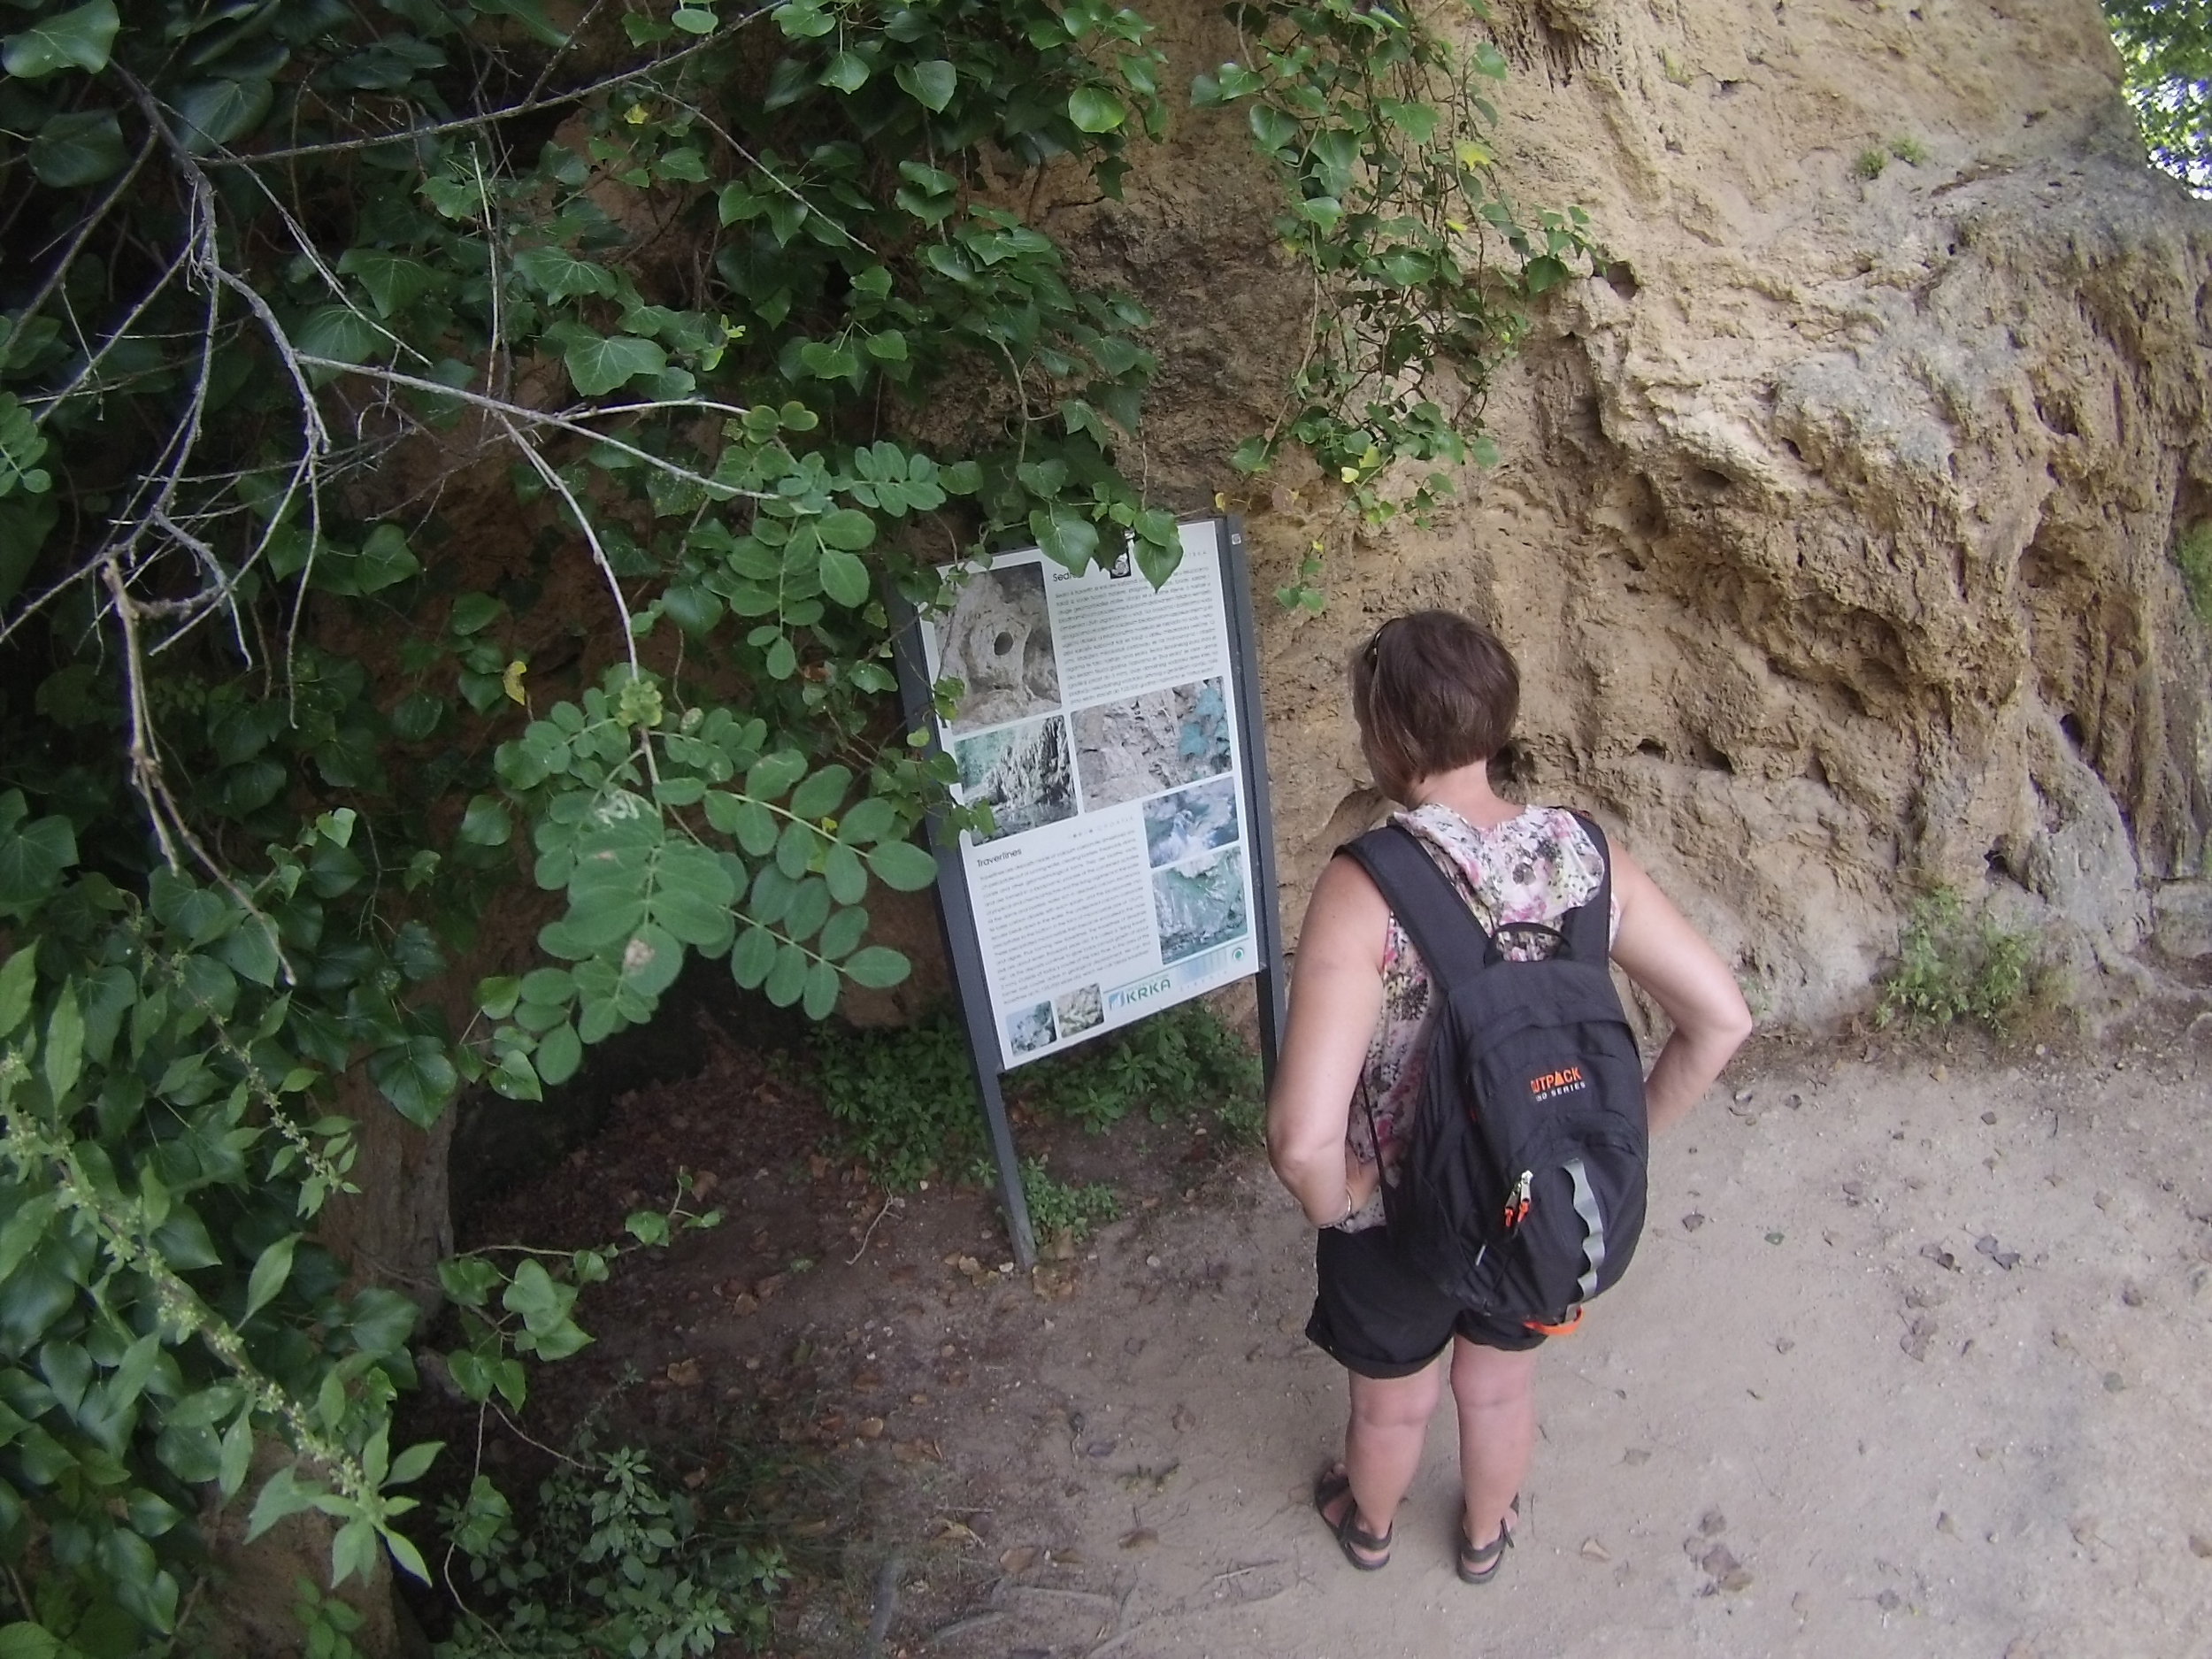 A woman reads one of the information boards at Krka National Park.